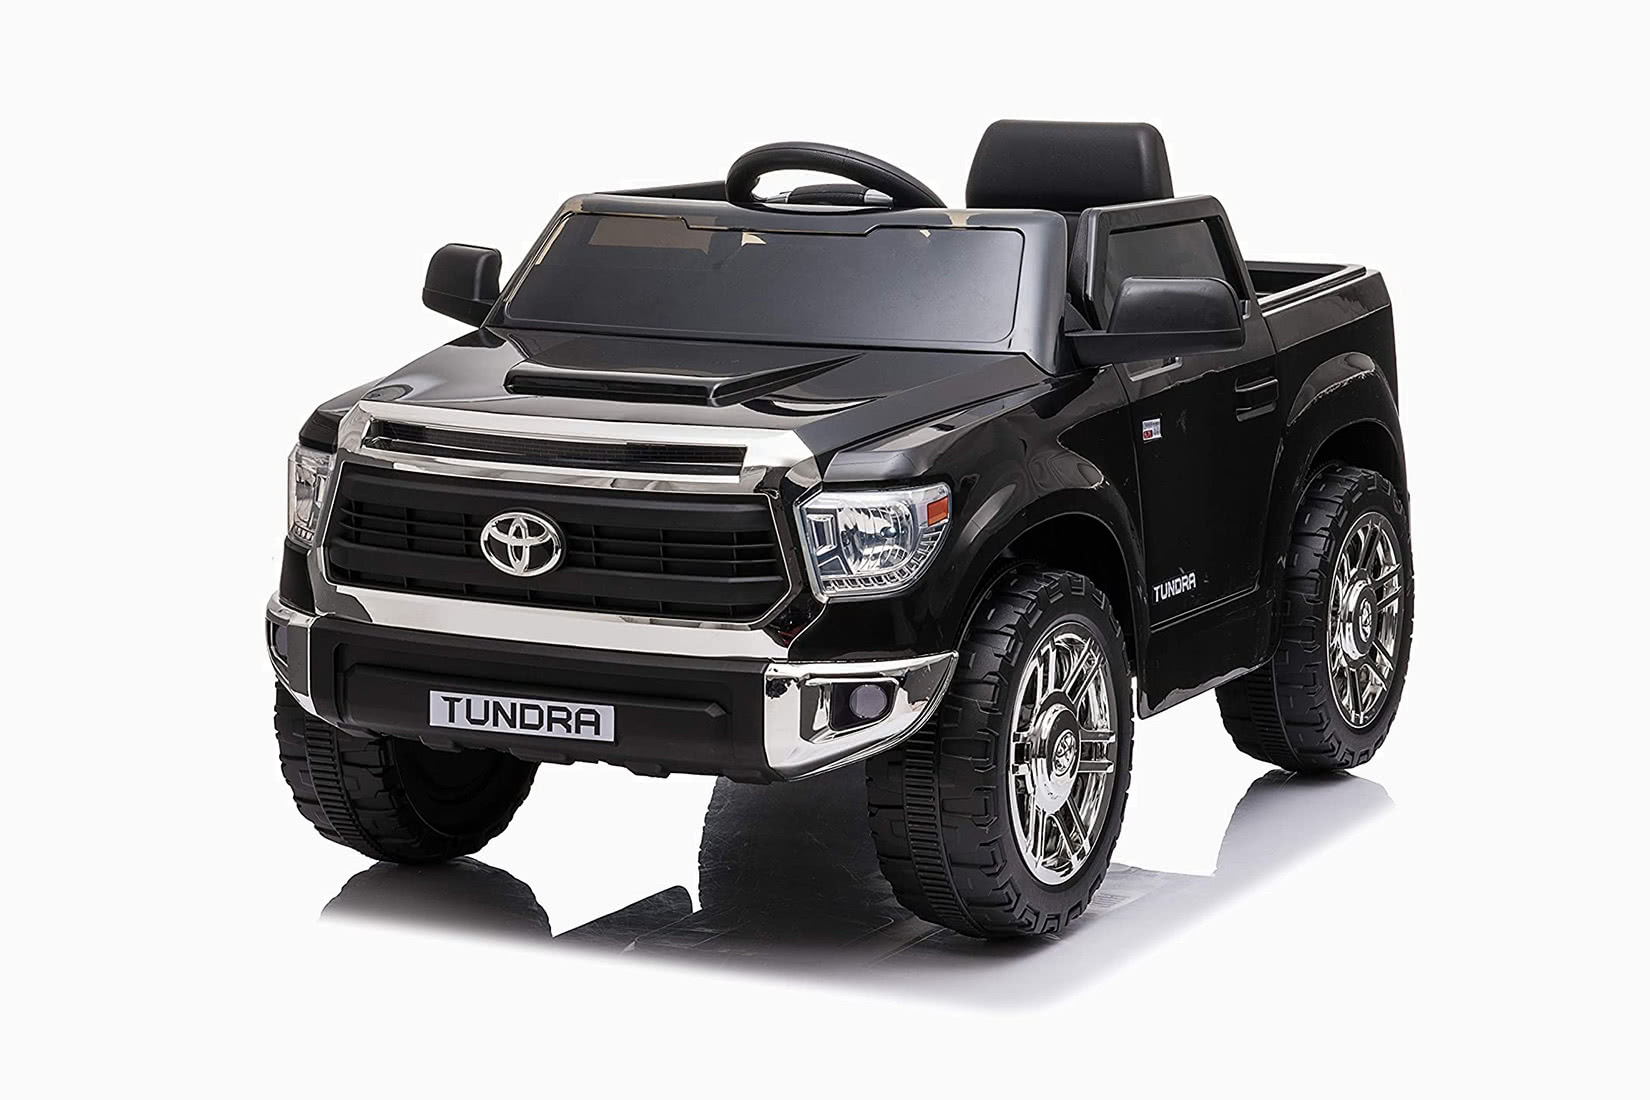 best electric cars kids toyota tundra pickup truck ride-on - Luxe Digital